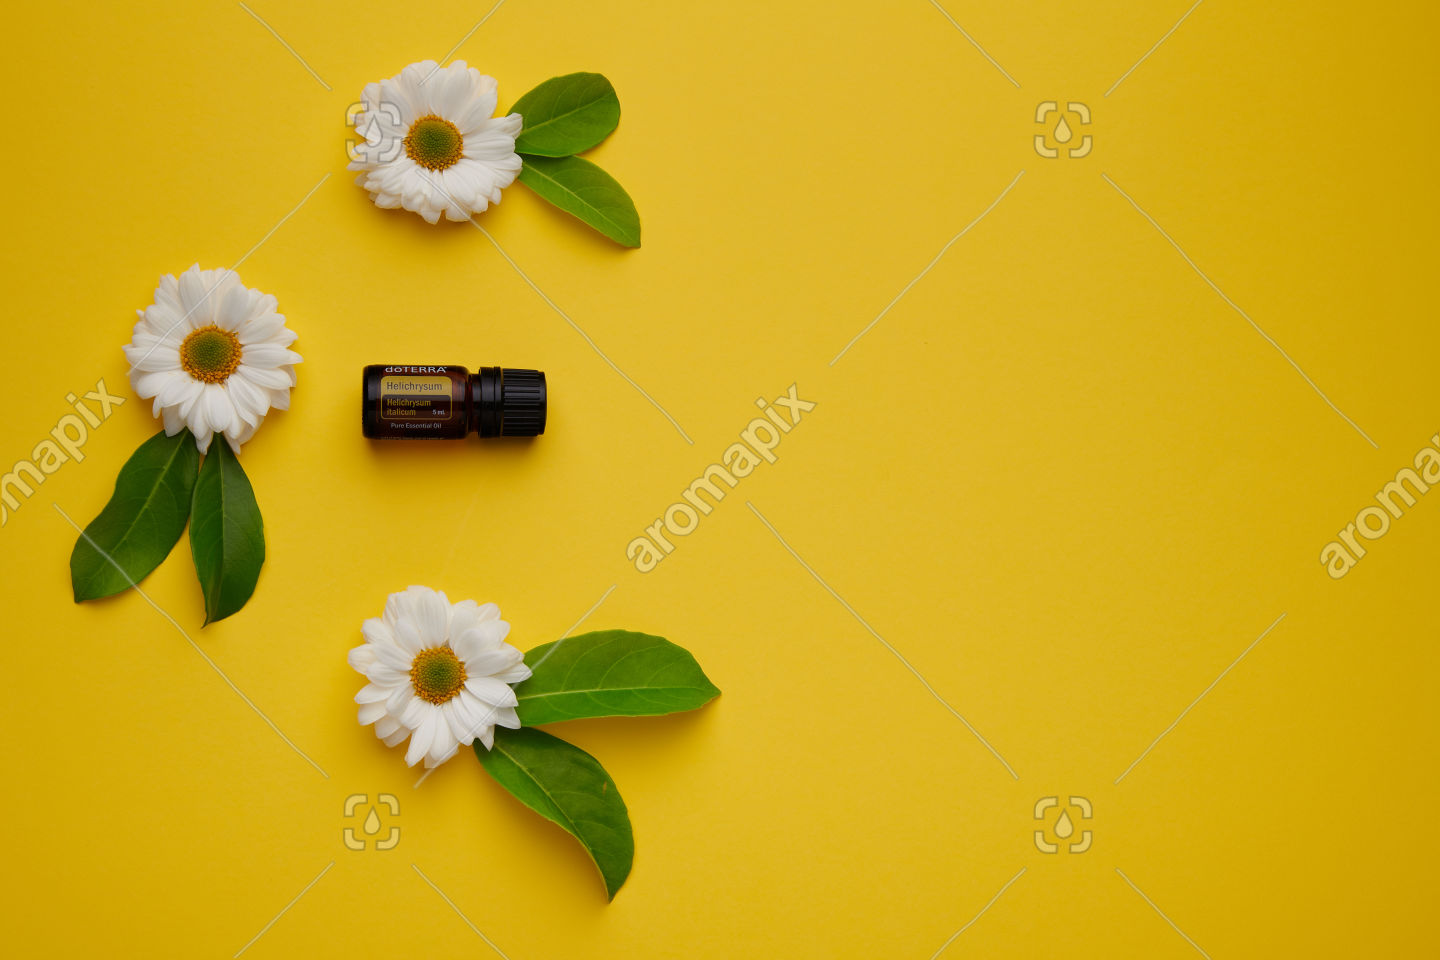 doTERRA Helichrysum with flowers and leaves on yellow